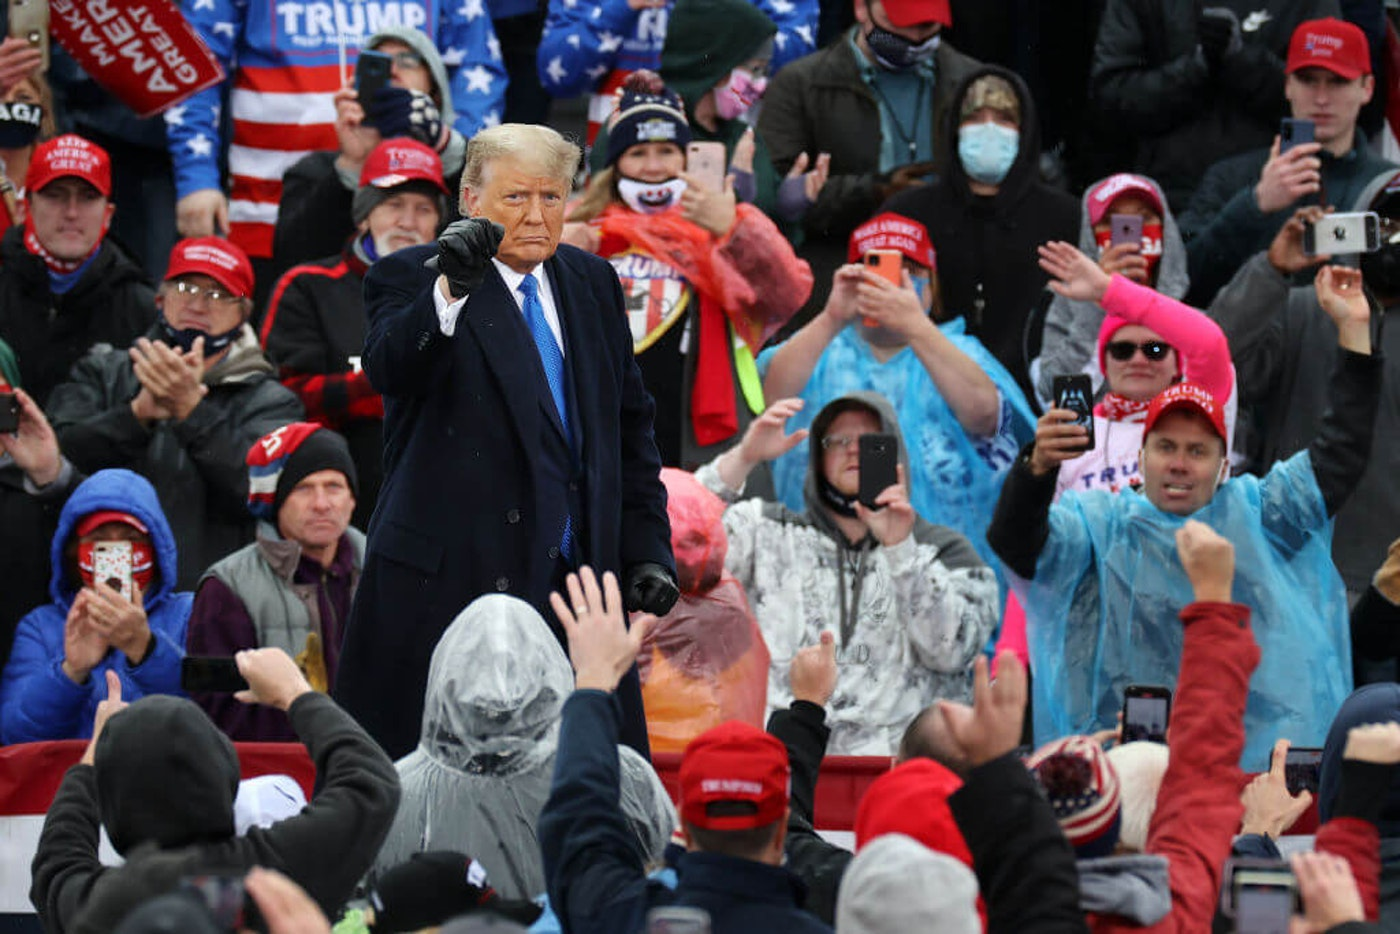 U.S. President Donald Trump pumps his fist after addressing supporters during a campaign rally at Capital Region International Airport October 27, 2020 in Lansing, Michigan. With one week until Election Day, Trump is campaigning in Michigan, a state he won in 2016 by less than 11,000 votes, the narrowest margin of victory in the state's presidential election history.  (Photo by Chip Somodevilla/Getty Images)